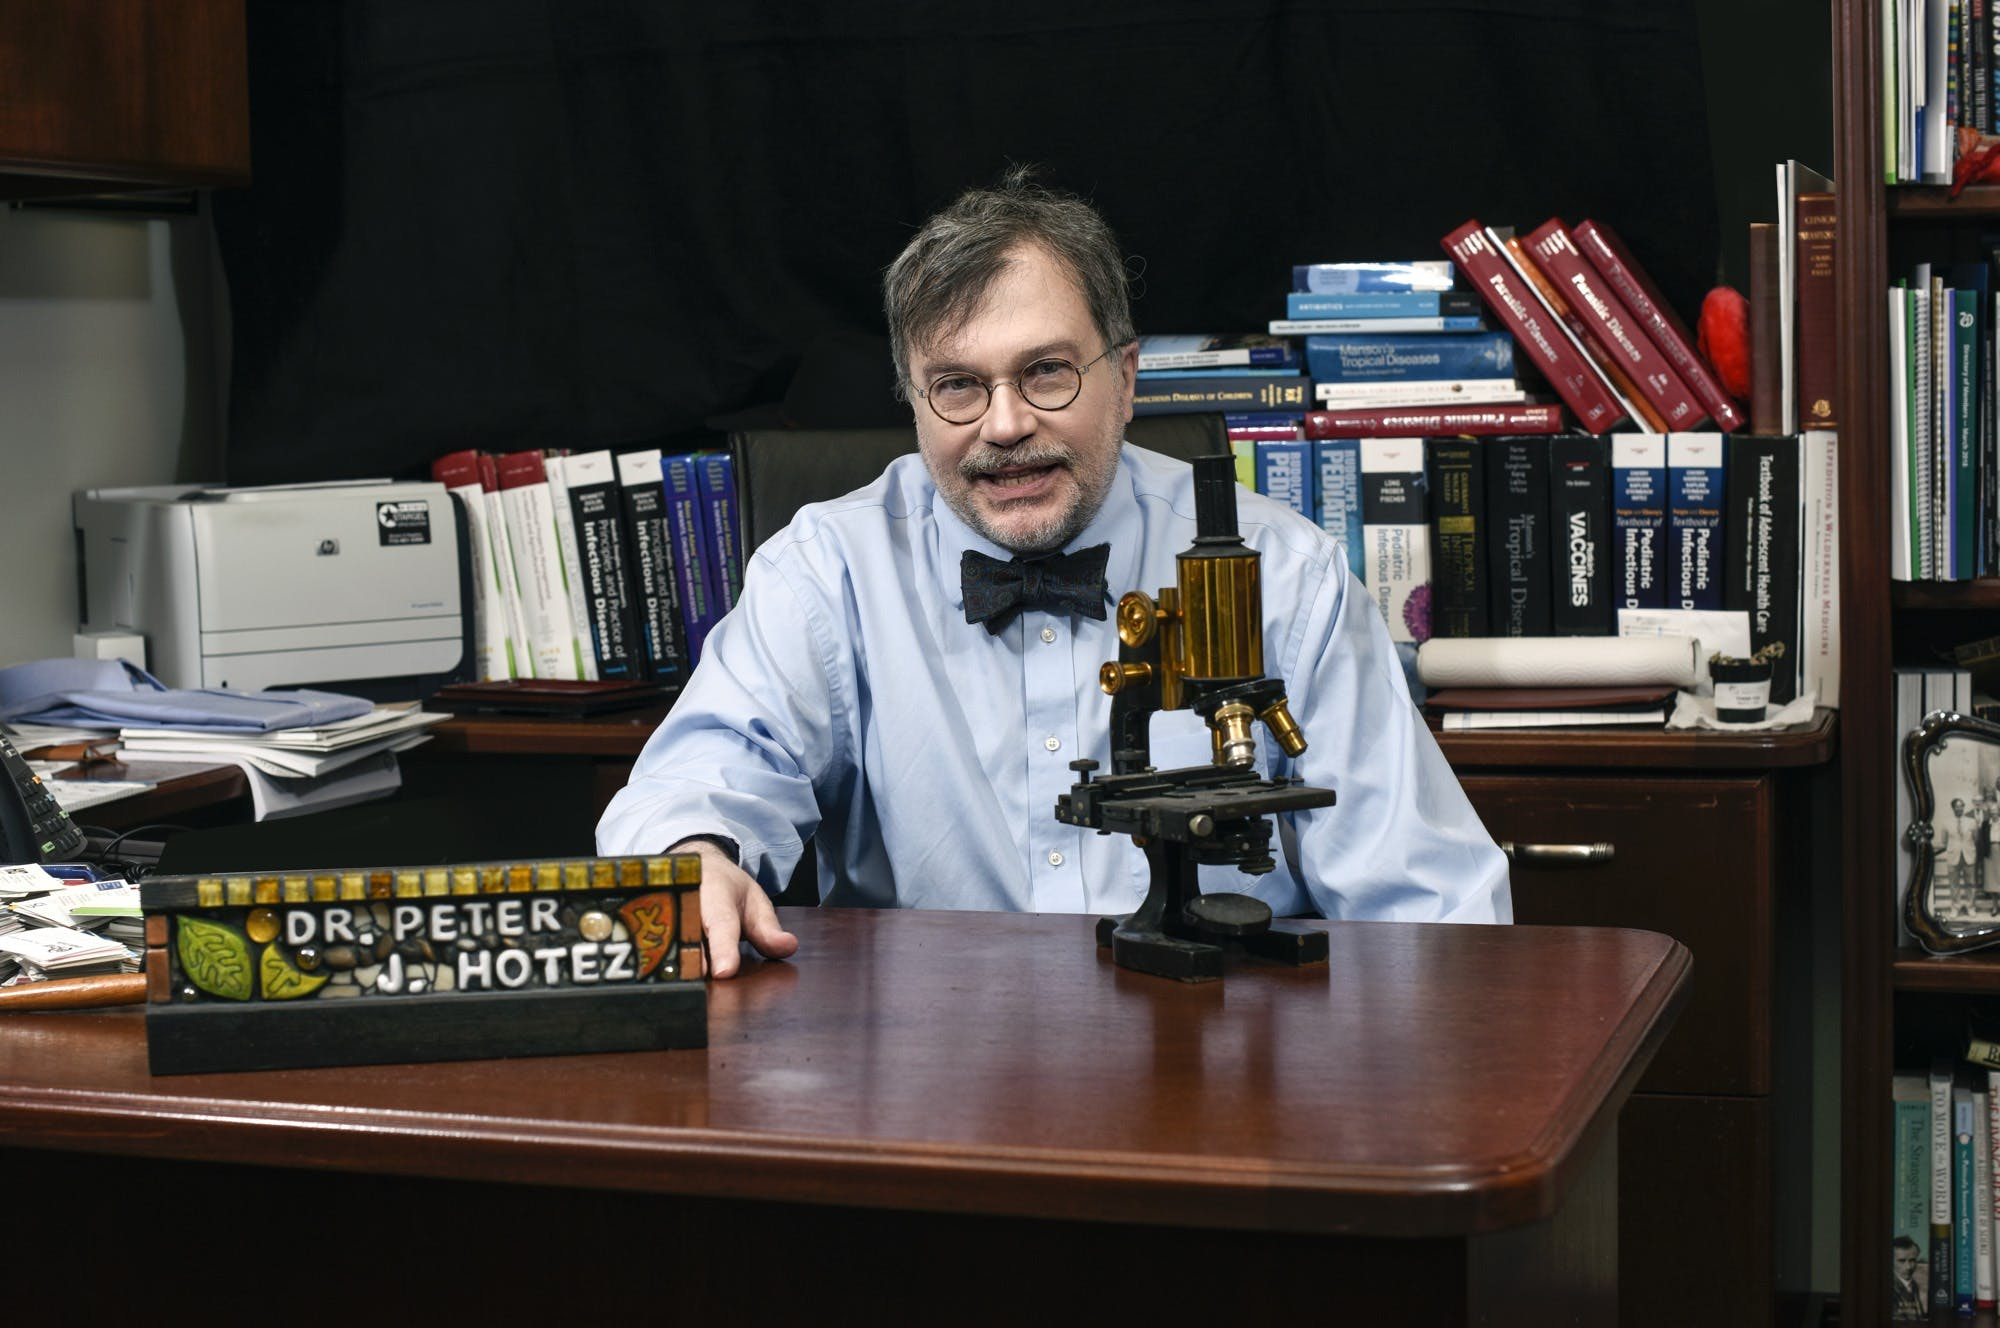 Dr. Peter Hotez explains vaccine diplomacy